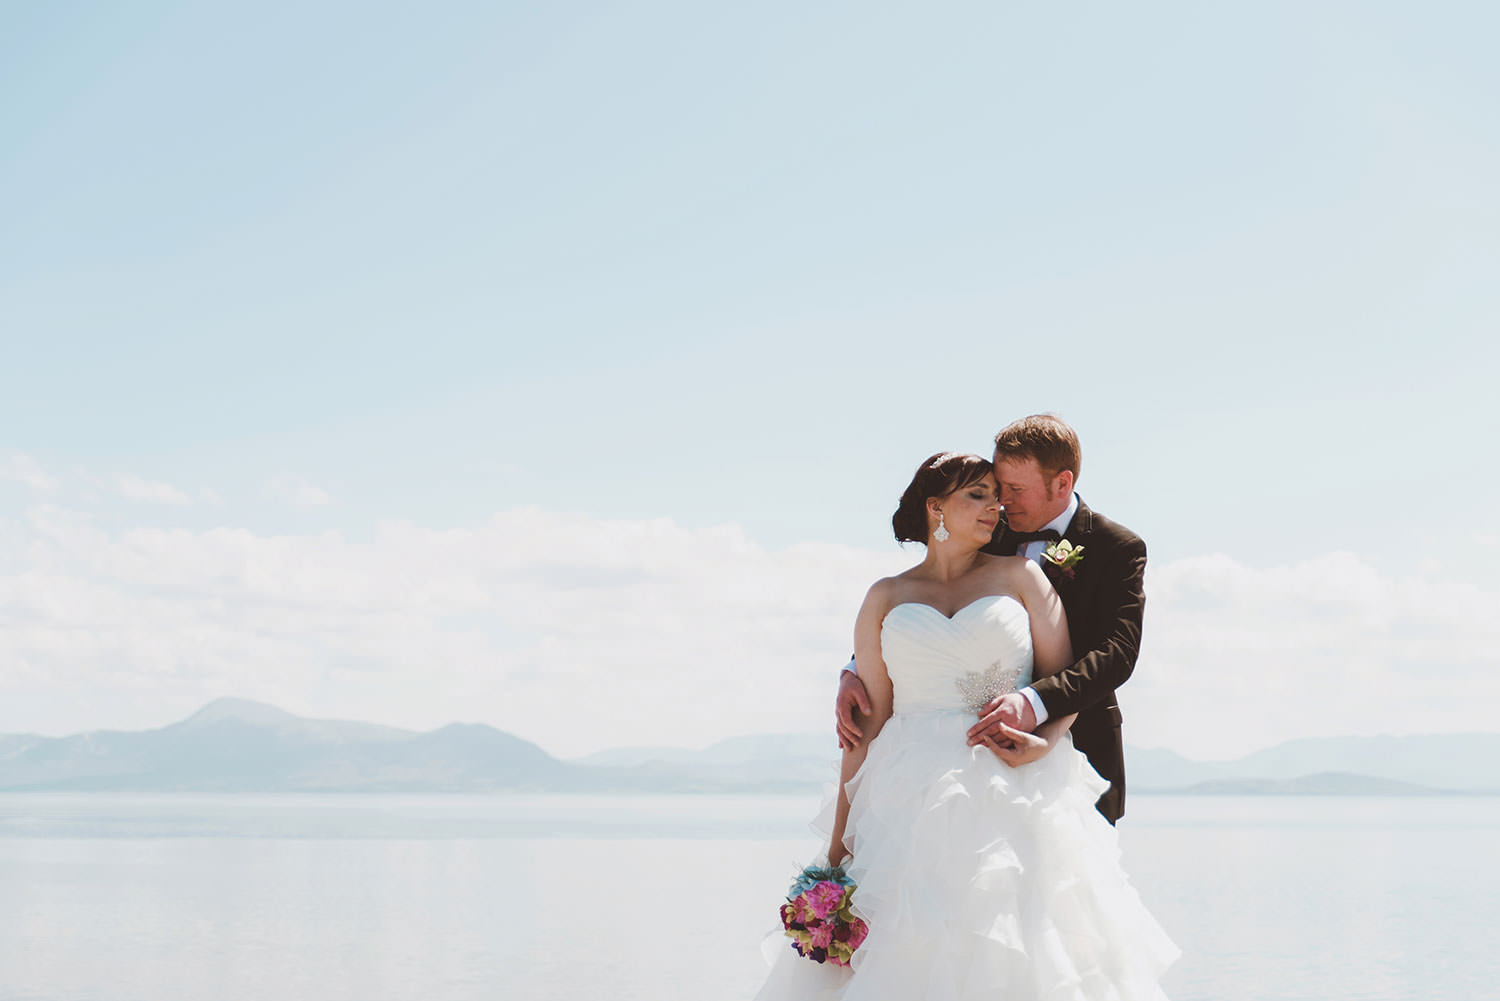 wedding-photographers-ireland-096.jpg